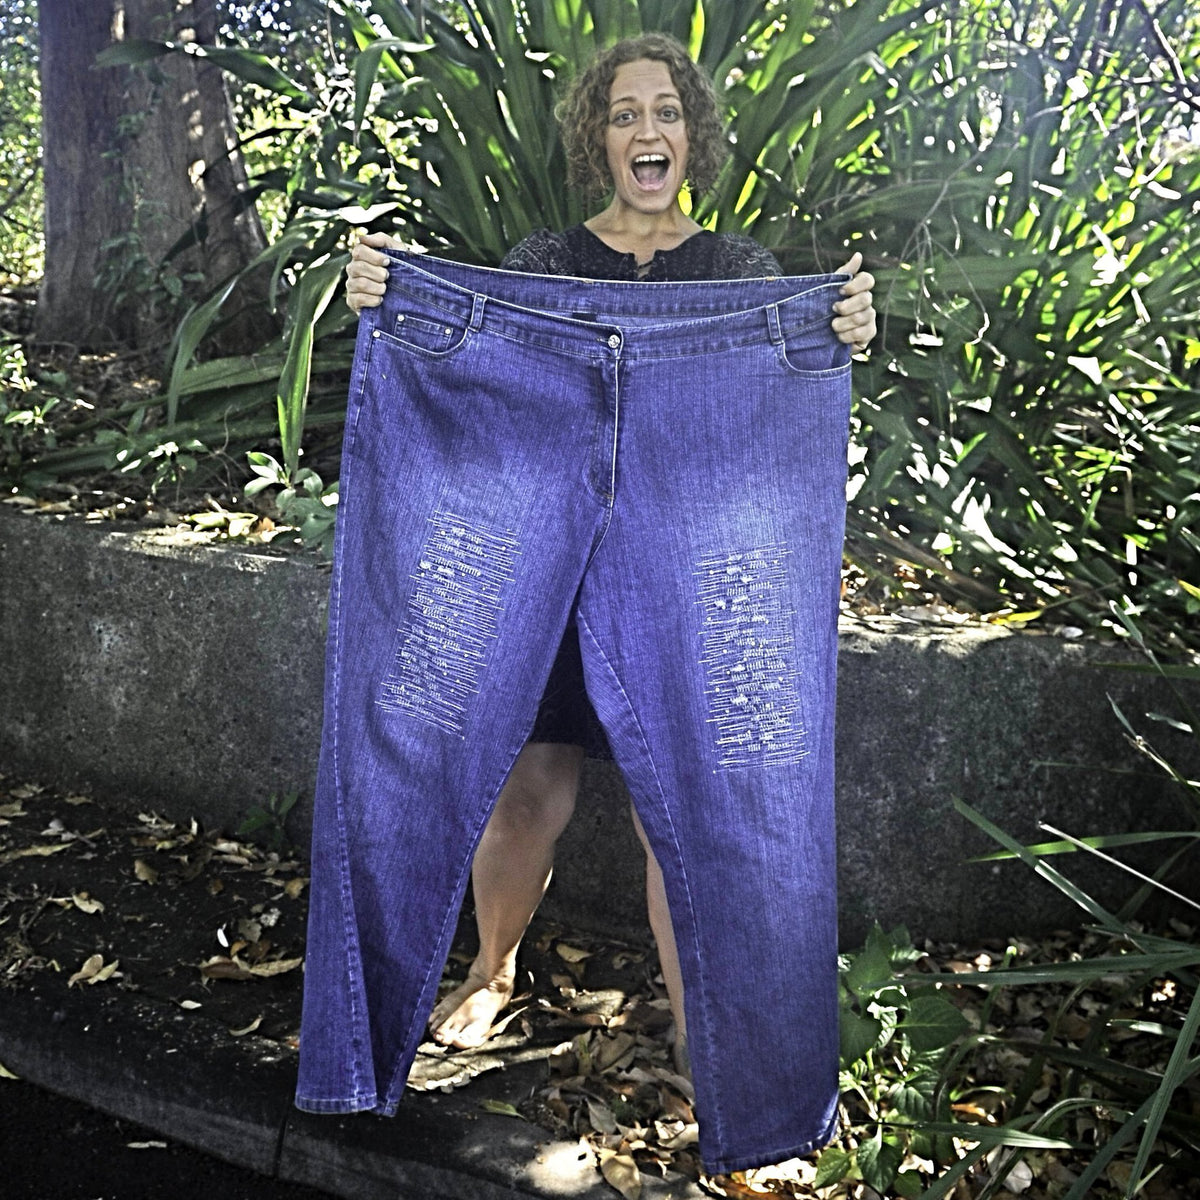 Natalie Rugger - my weight loss through wellness journey made me 75 kilos lighter